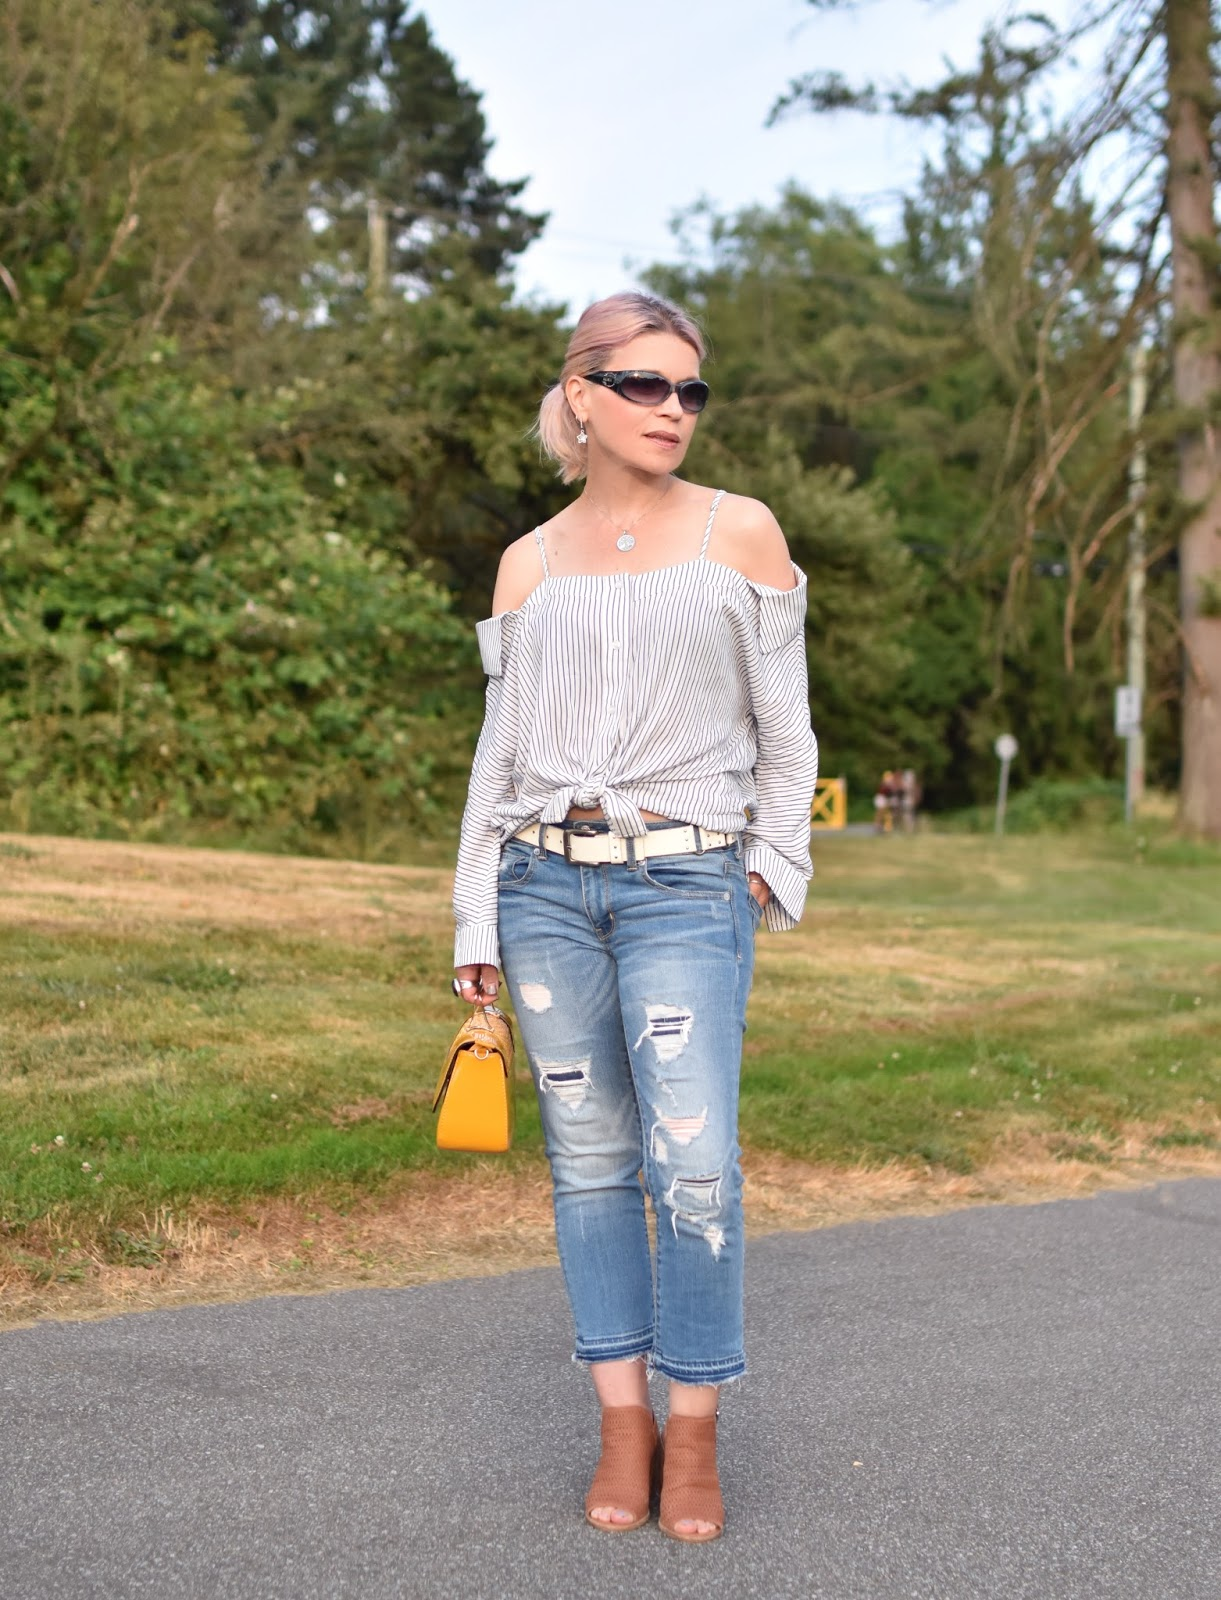 Monika Faulkner personal style inspiration - an off-the-shoulder striped shirt with distressed cropped jeans and cut-out booties